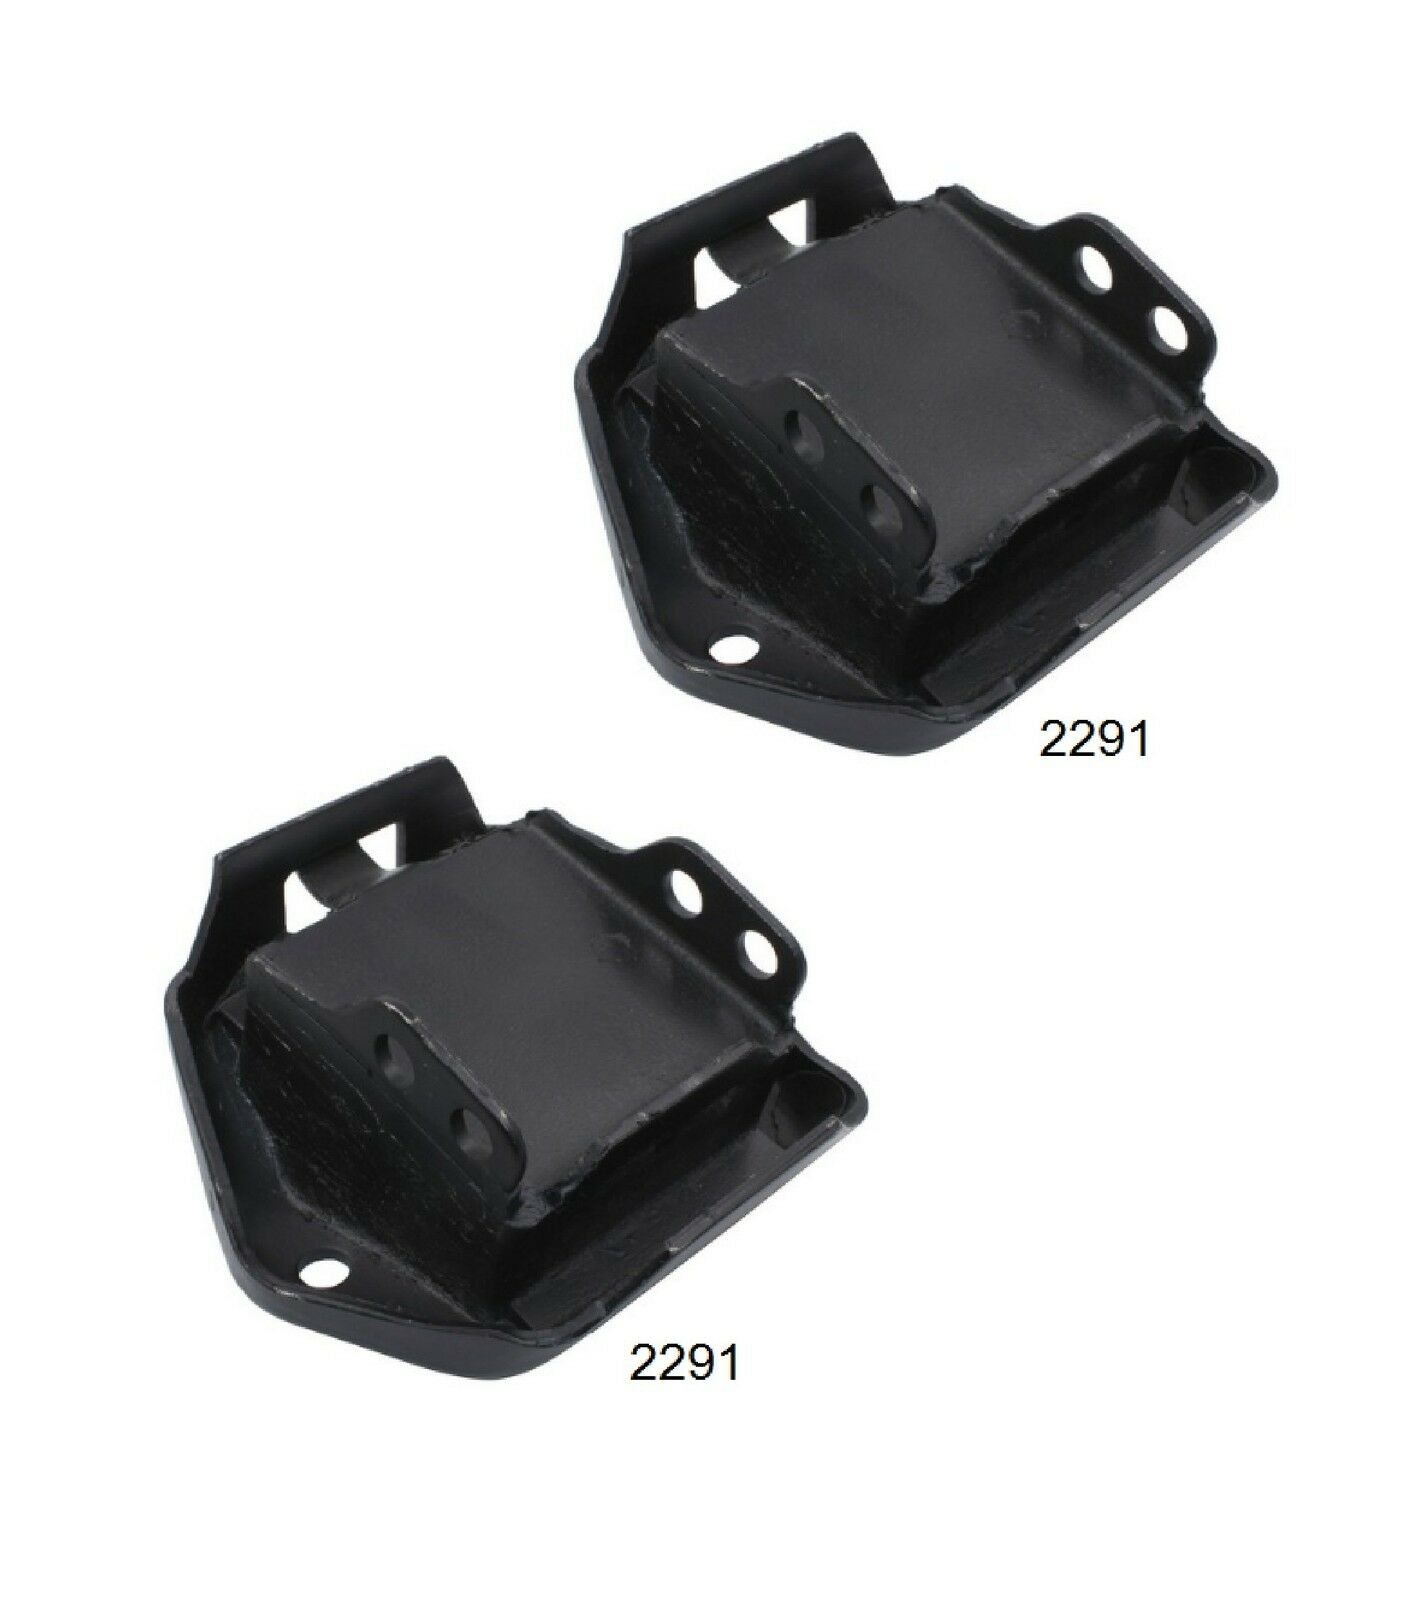 2 PCS FRONT LEFT /& RIGHT MOTOR MOUNT For 1973-1974 BUICK CENTURY 7.5L